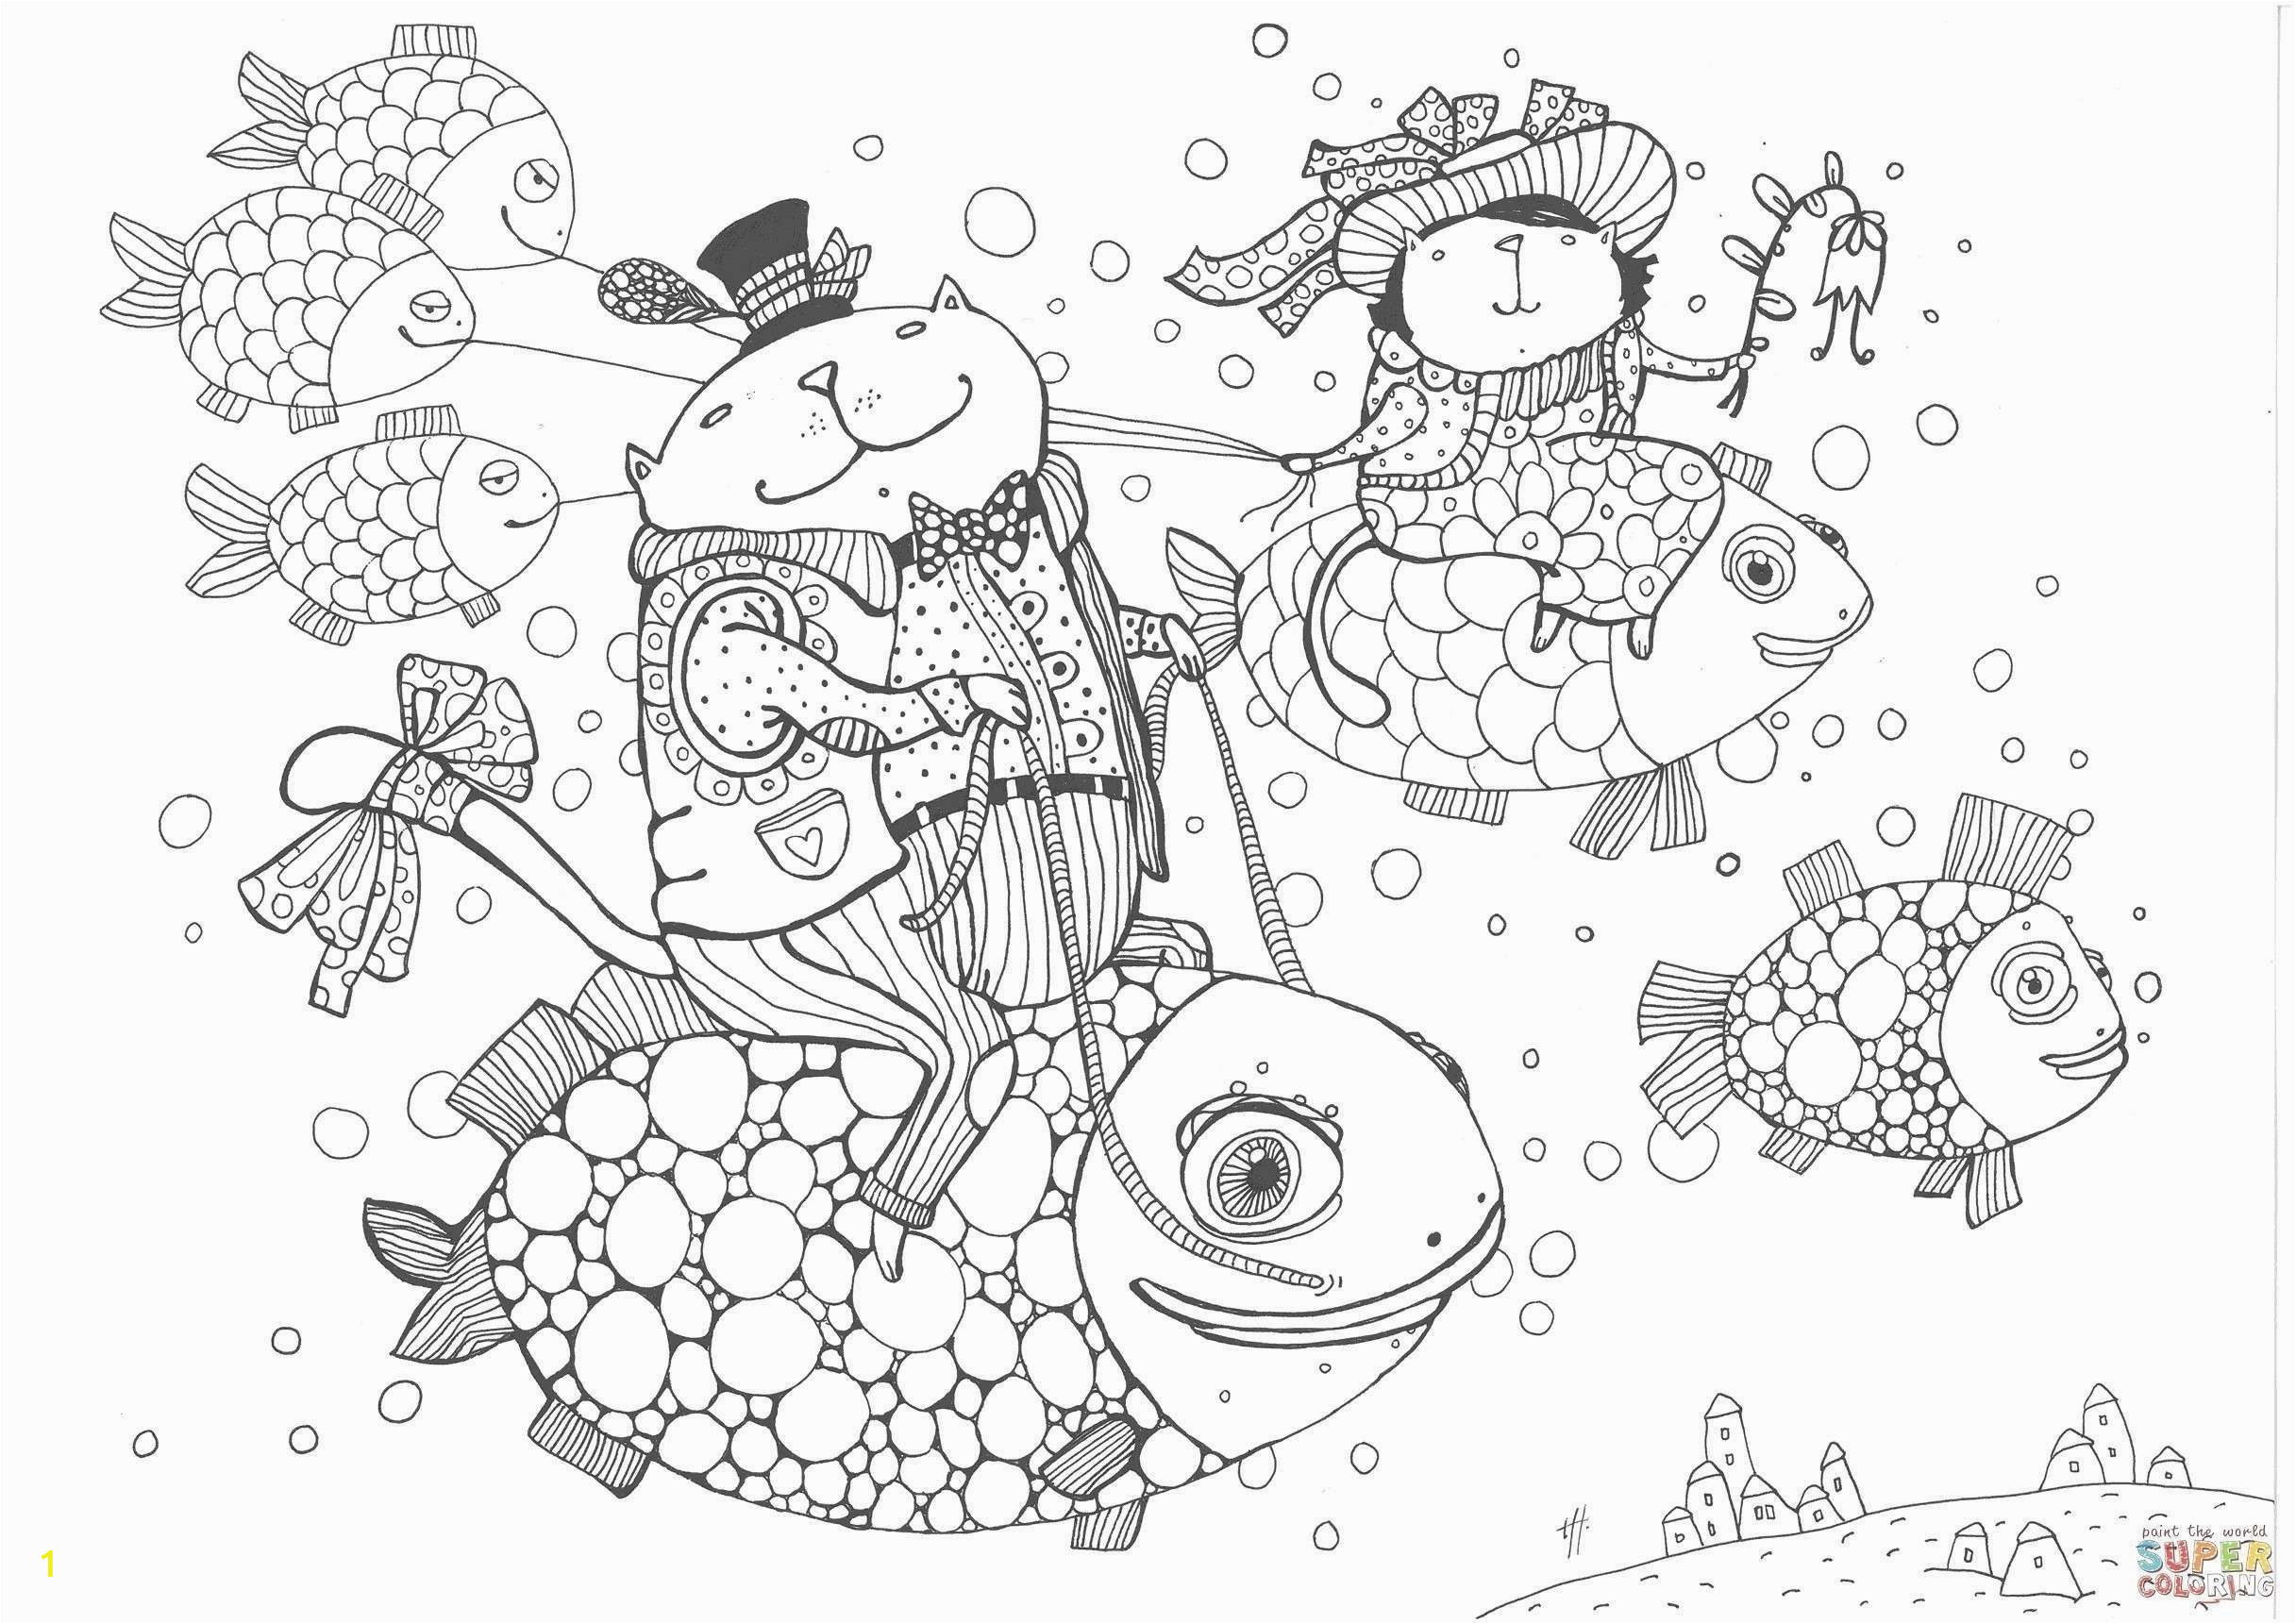 preschool holiday coloring pages for kids free printables adults young adult books christmas happy winter holidays colouring color spongebob barbie book doraemon games